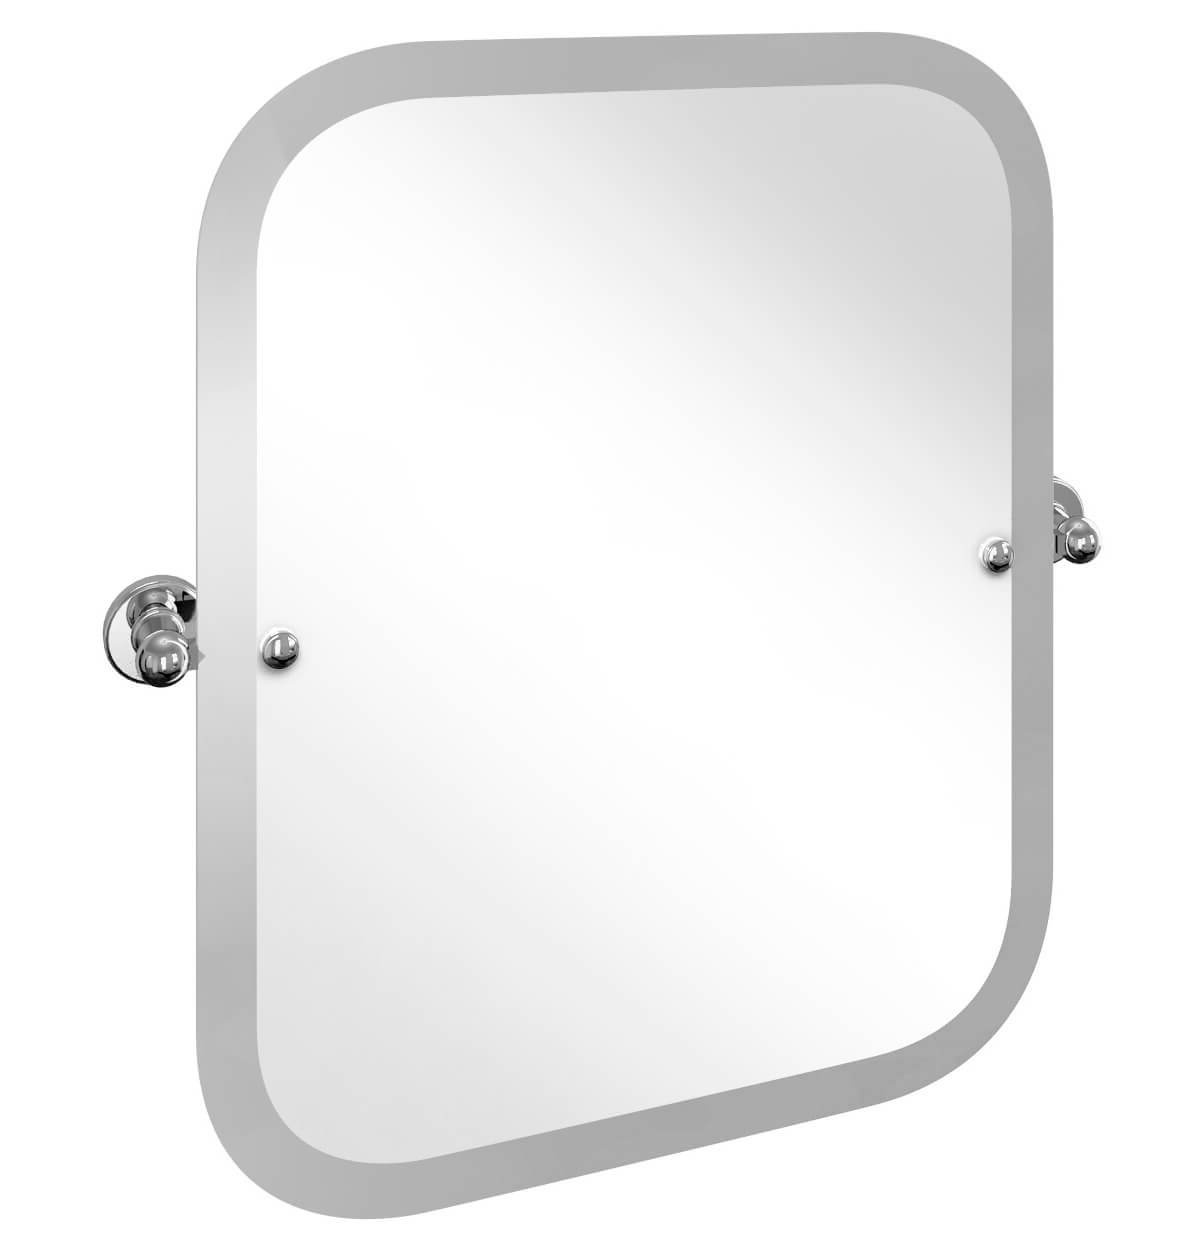 Swivel Wall Mirrors Throughout Newest Burlington Arcade Rectangular Wall Mounted Swivel Mirror With Curved Corners (View 15 of 20)